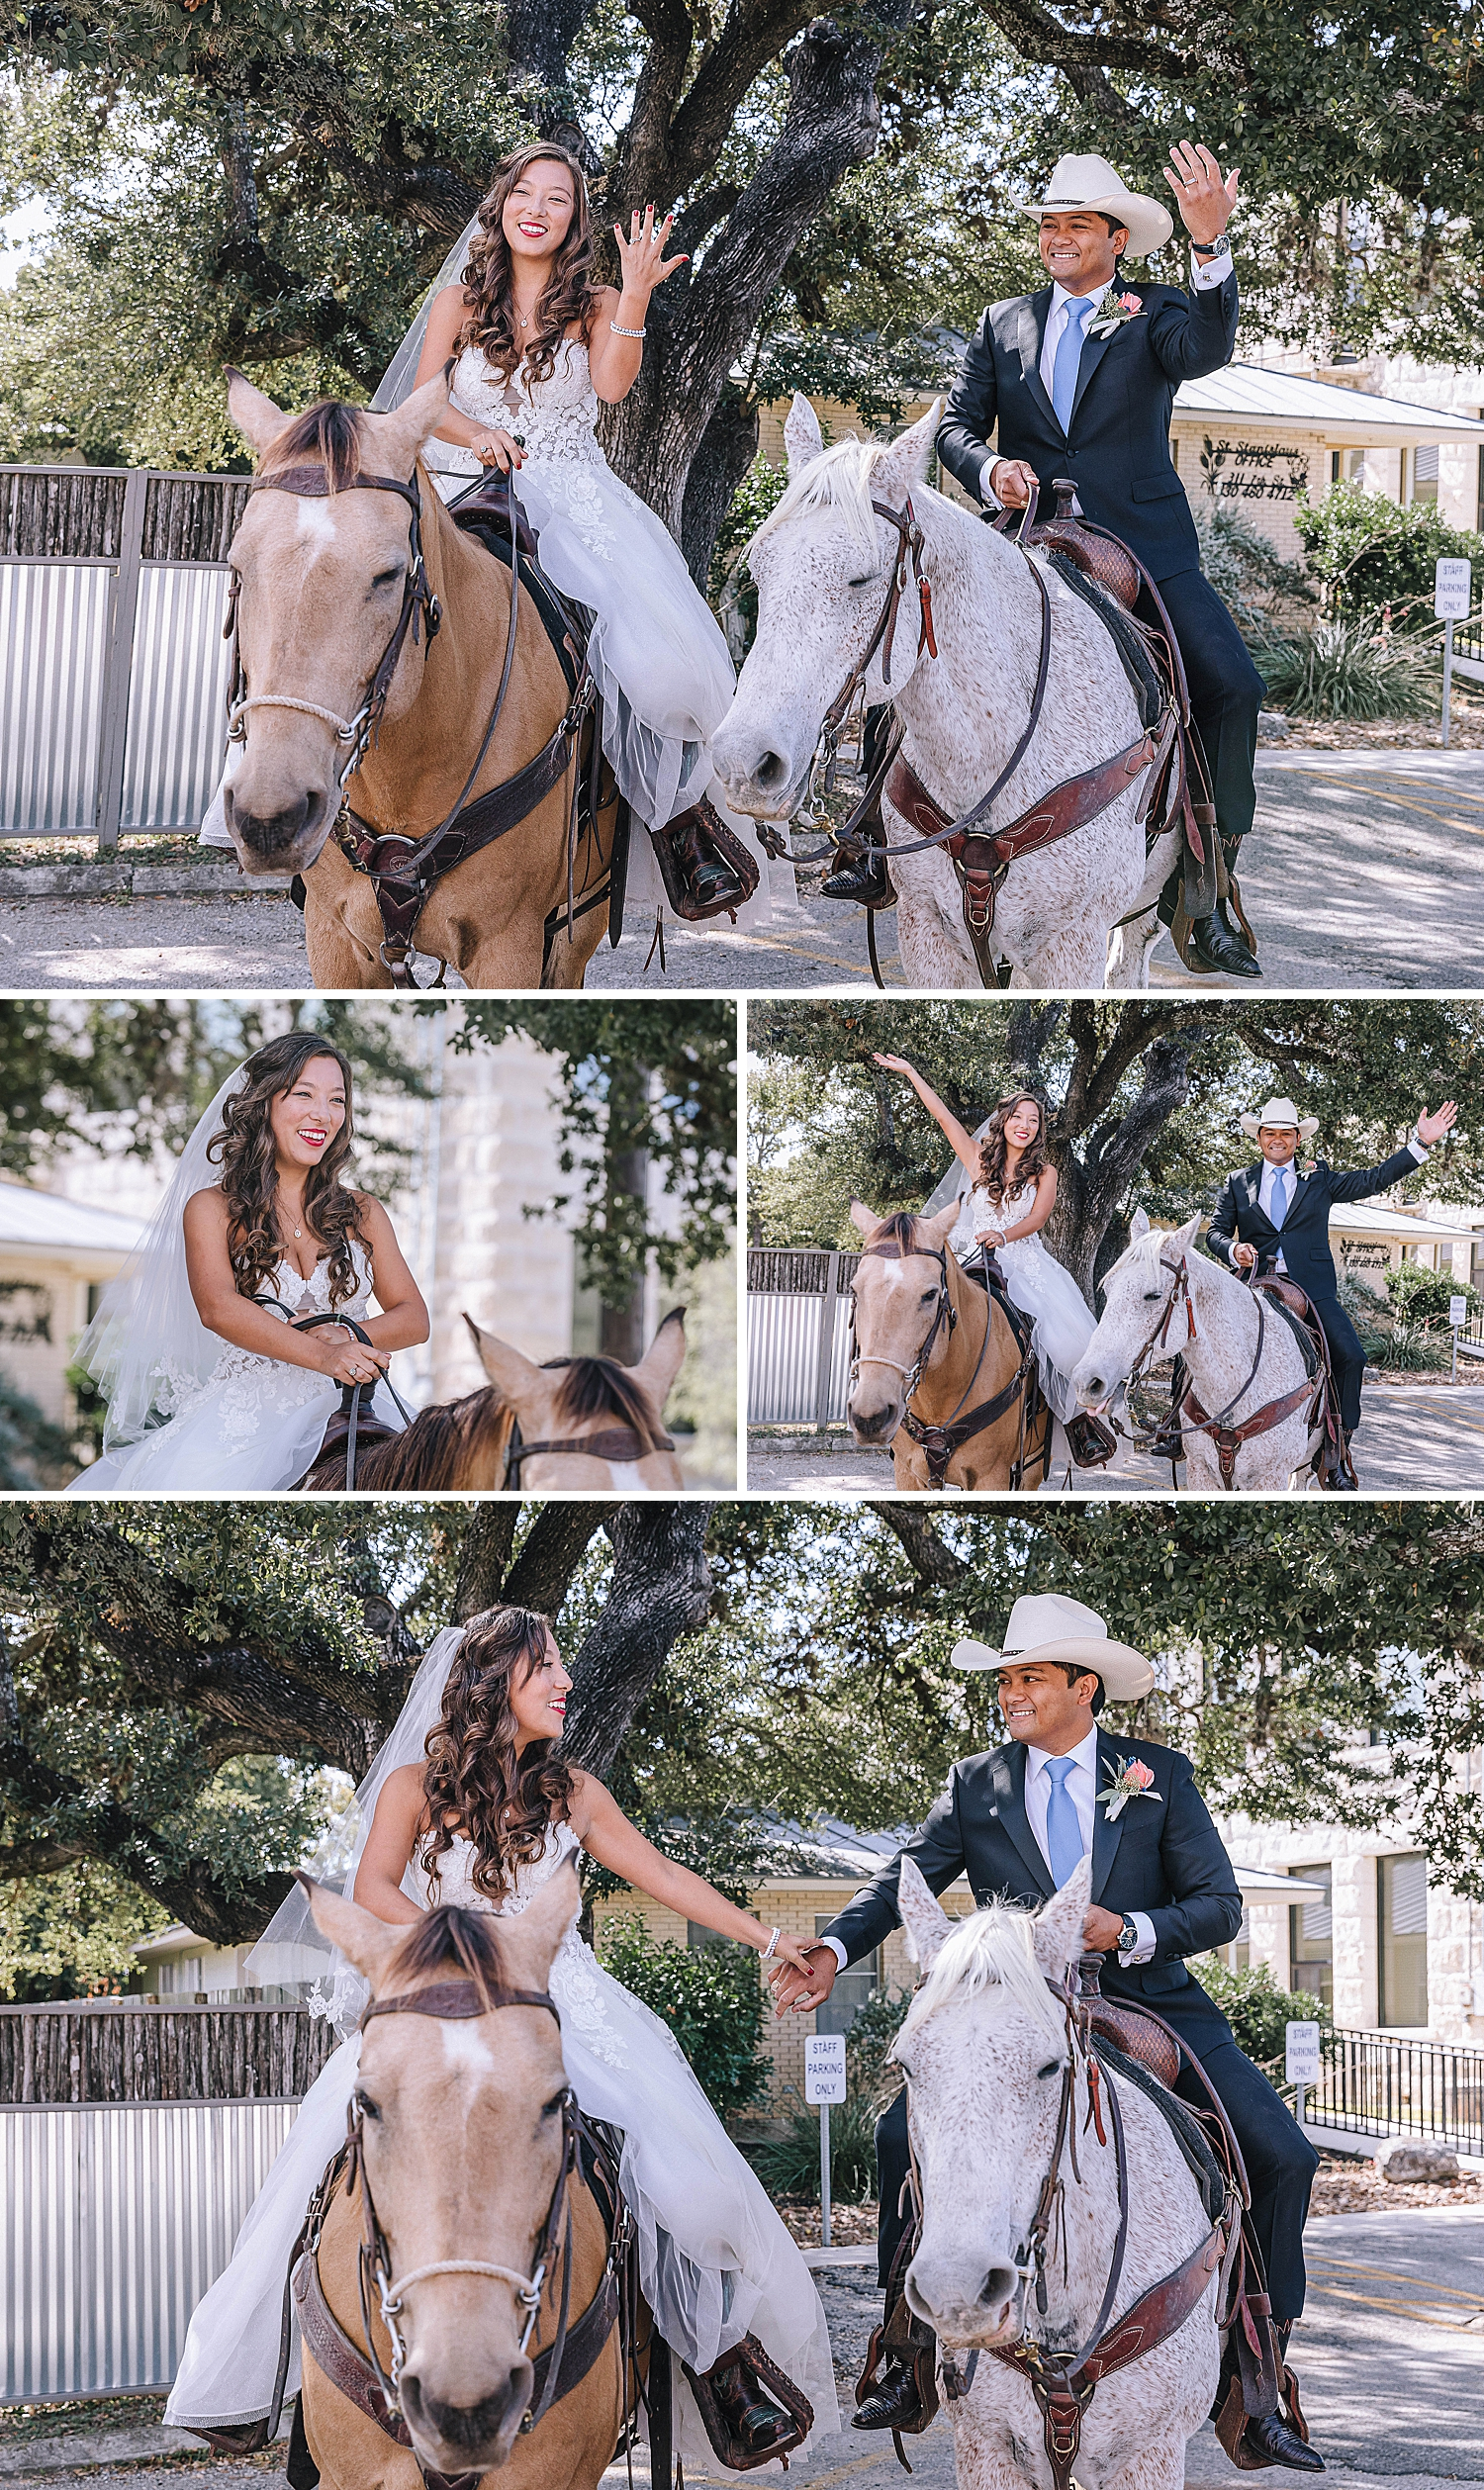 Bandera-Texas-Wedding-Photographer-Bride-Groom-on-Horses-Carly-Barton-Photography_0031.jpg